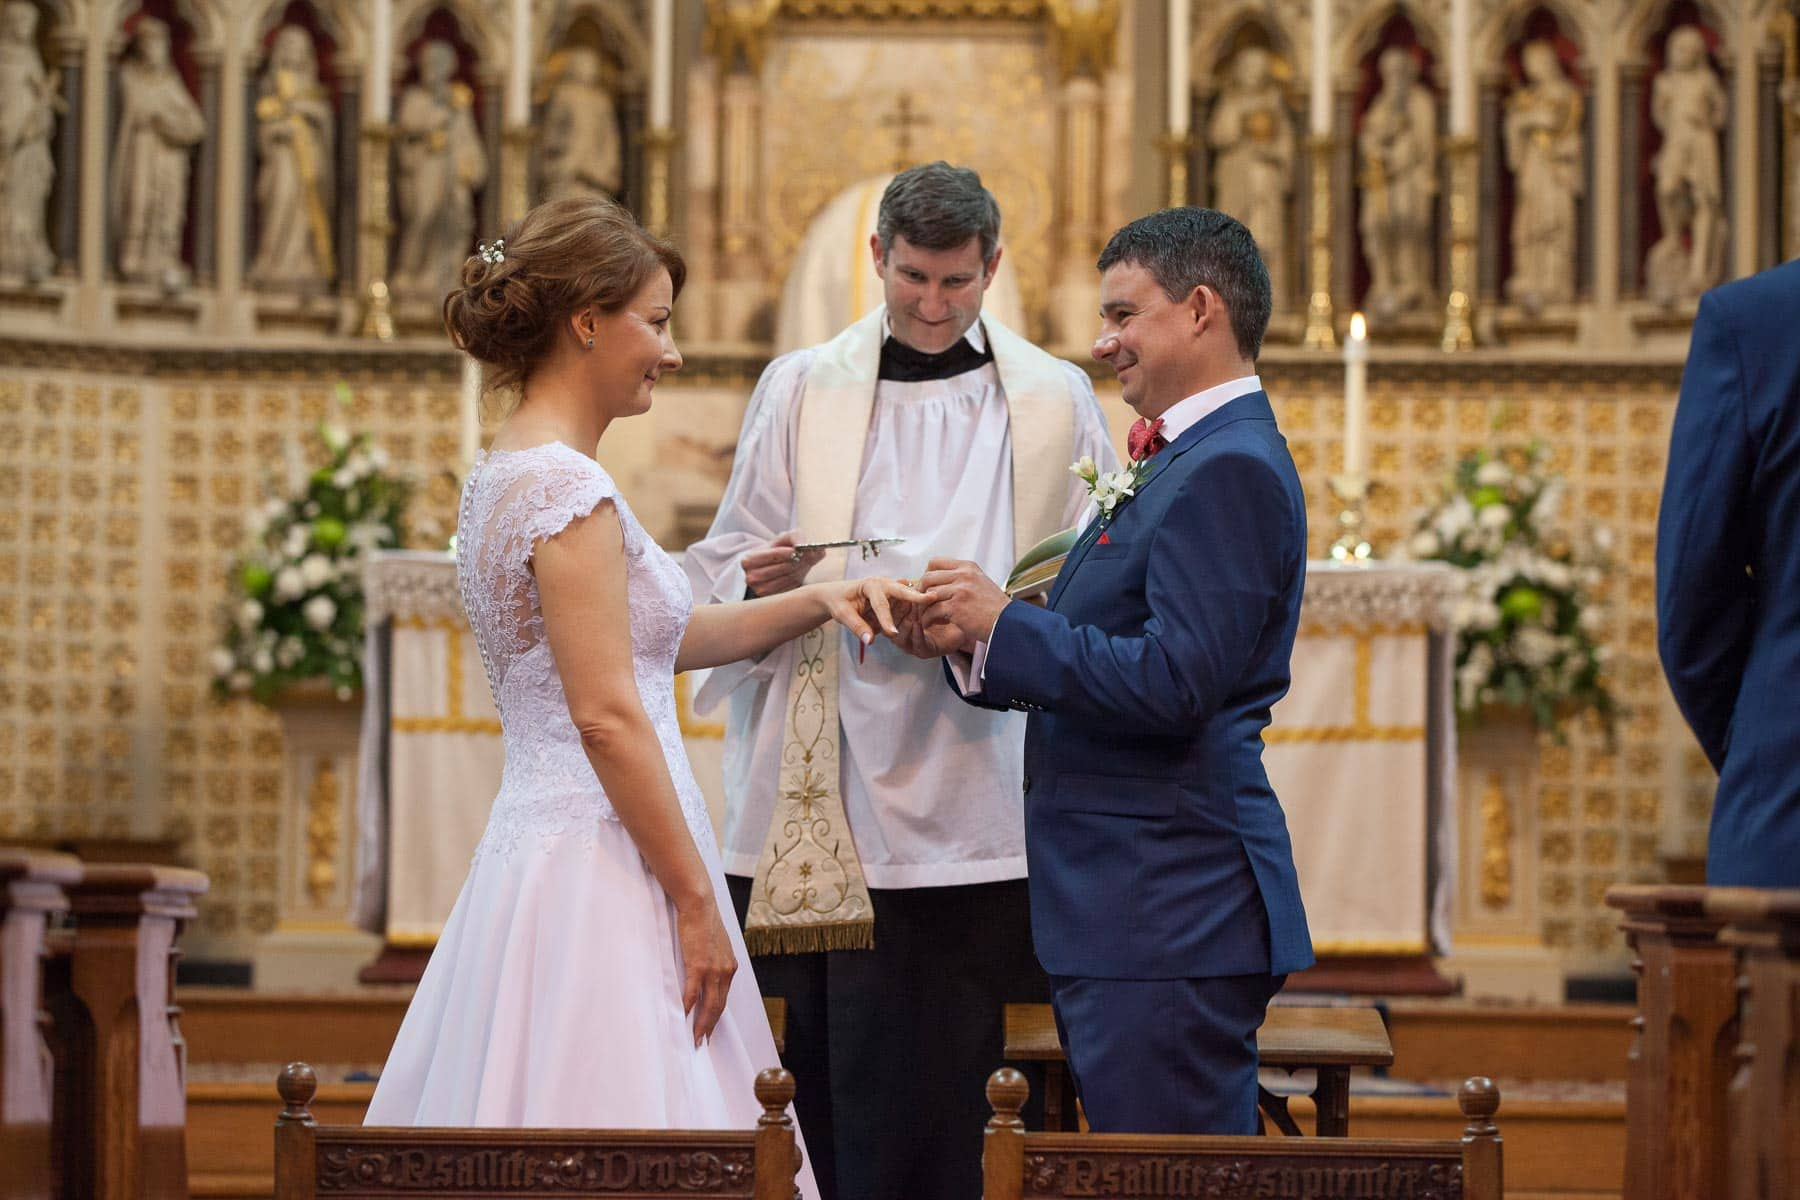 Groom puts ring on bride's finger at church ceremony